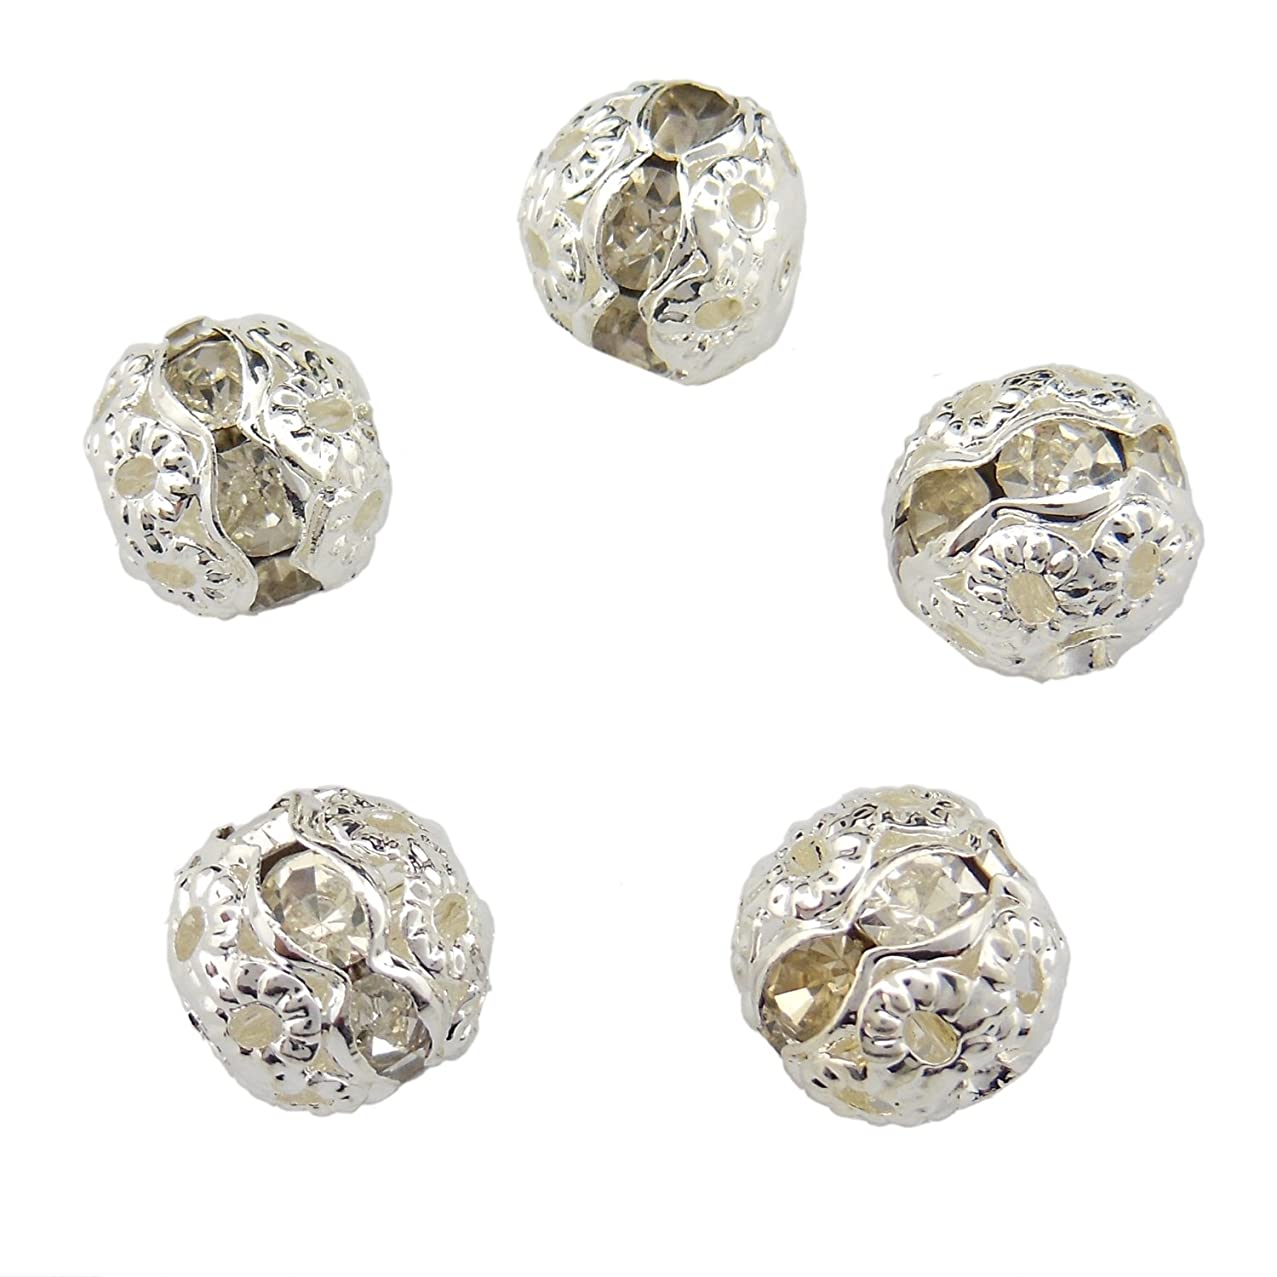 50PCS 8MM Silver Color Crystal Rondelle Spacer Beads Fire Ball Beads for Jewelry Making & DIY (ZQ-1001-8)